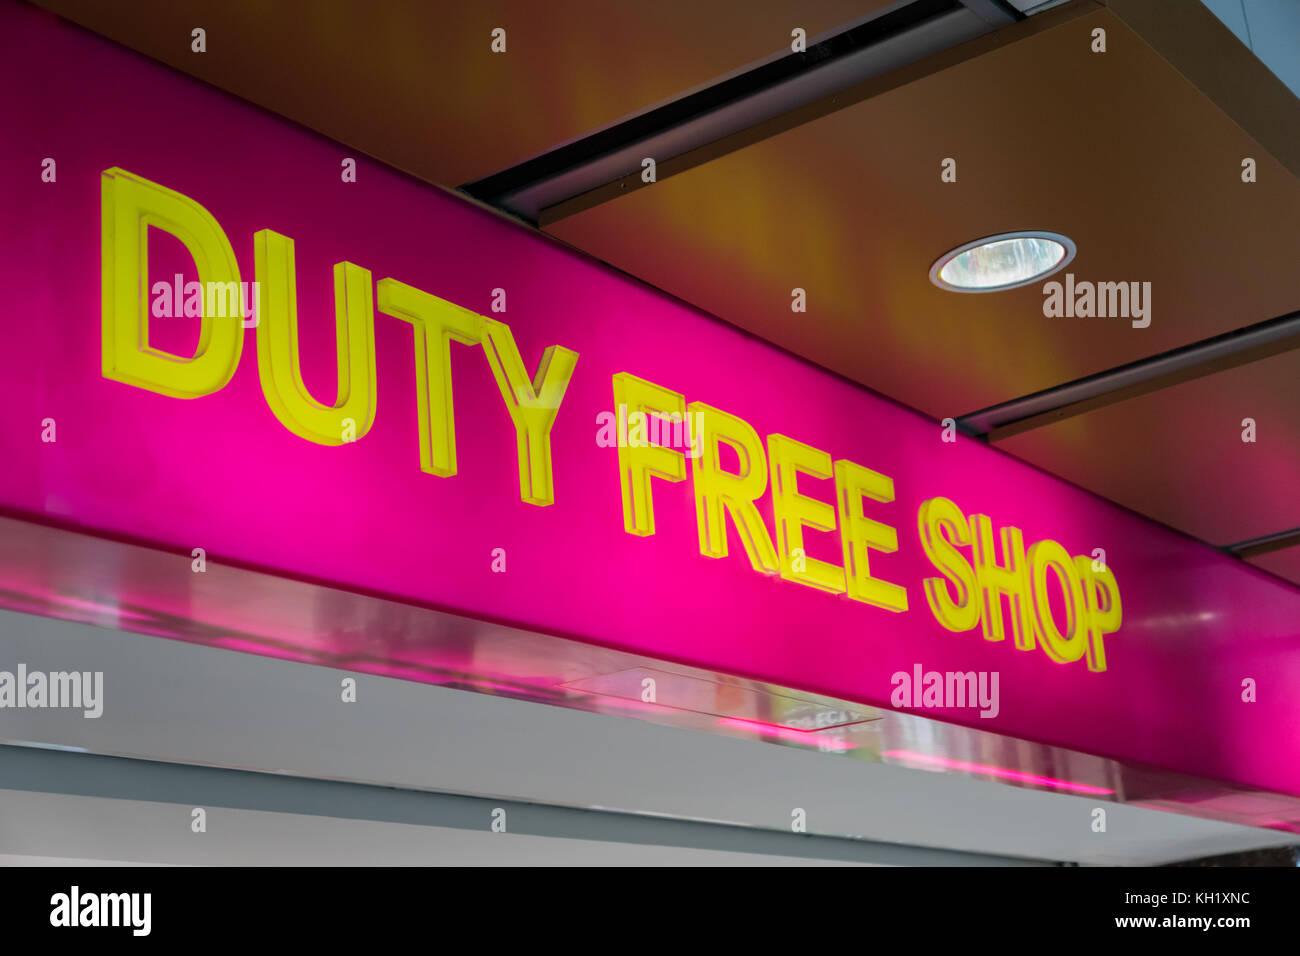 duty free shop sign inside of an international airport - Stock Image